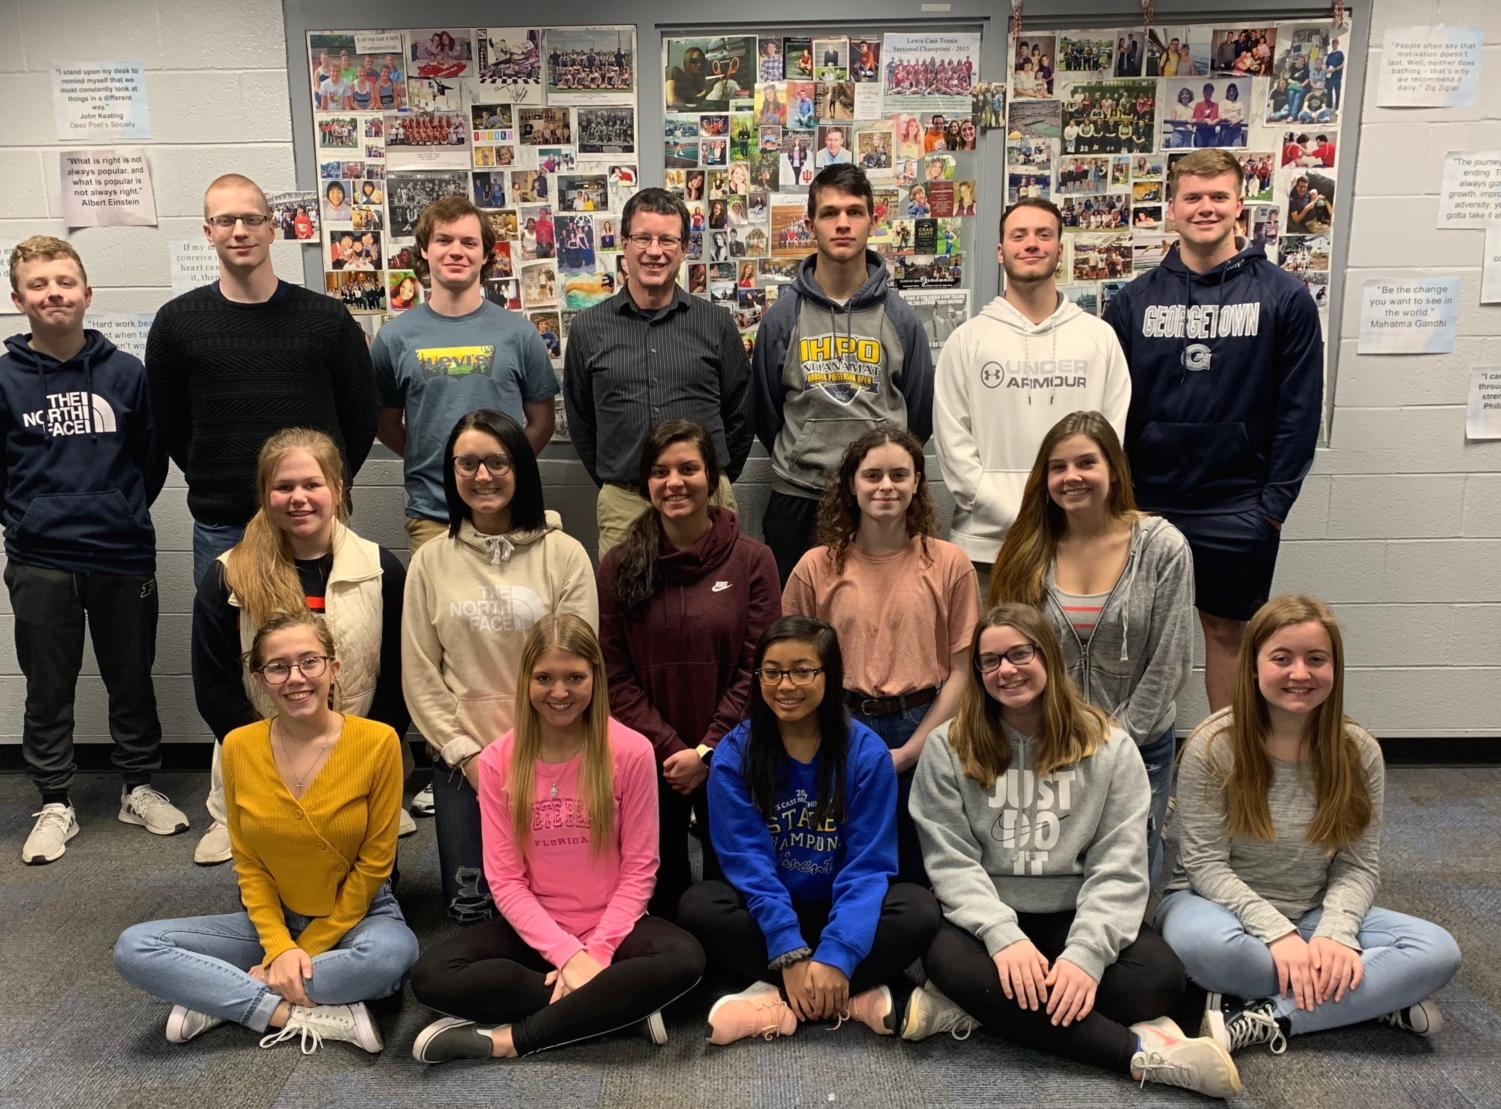 Front Row: Josie Woolever, McKayla Thompson, Bella Panmei, Megan Dishon, Katelyn Schreckenghaust,  Middle Row: Clara Licklider, Ashli Key, Brannyn Spencer, Kelsey Wise, Brooklynn Fye Back Row: Jack Salyers, Carl Jay, Levi Dyer, Engle, Alex Myers, Uriah Riemenschneider, Caleb Johnson Missing: Dixon Collins, Lauren Hileman, Reese Rodabaugh,